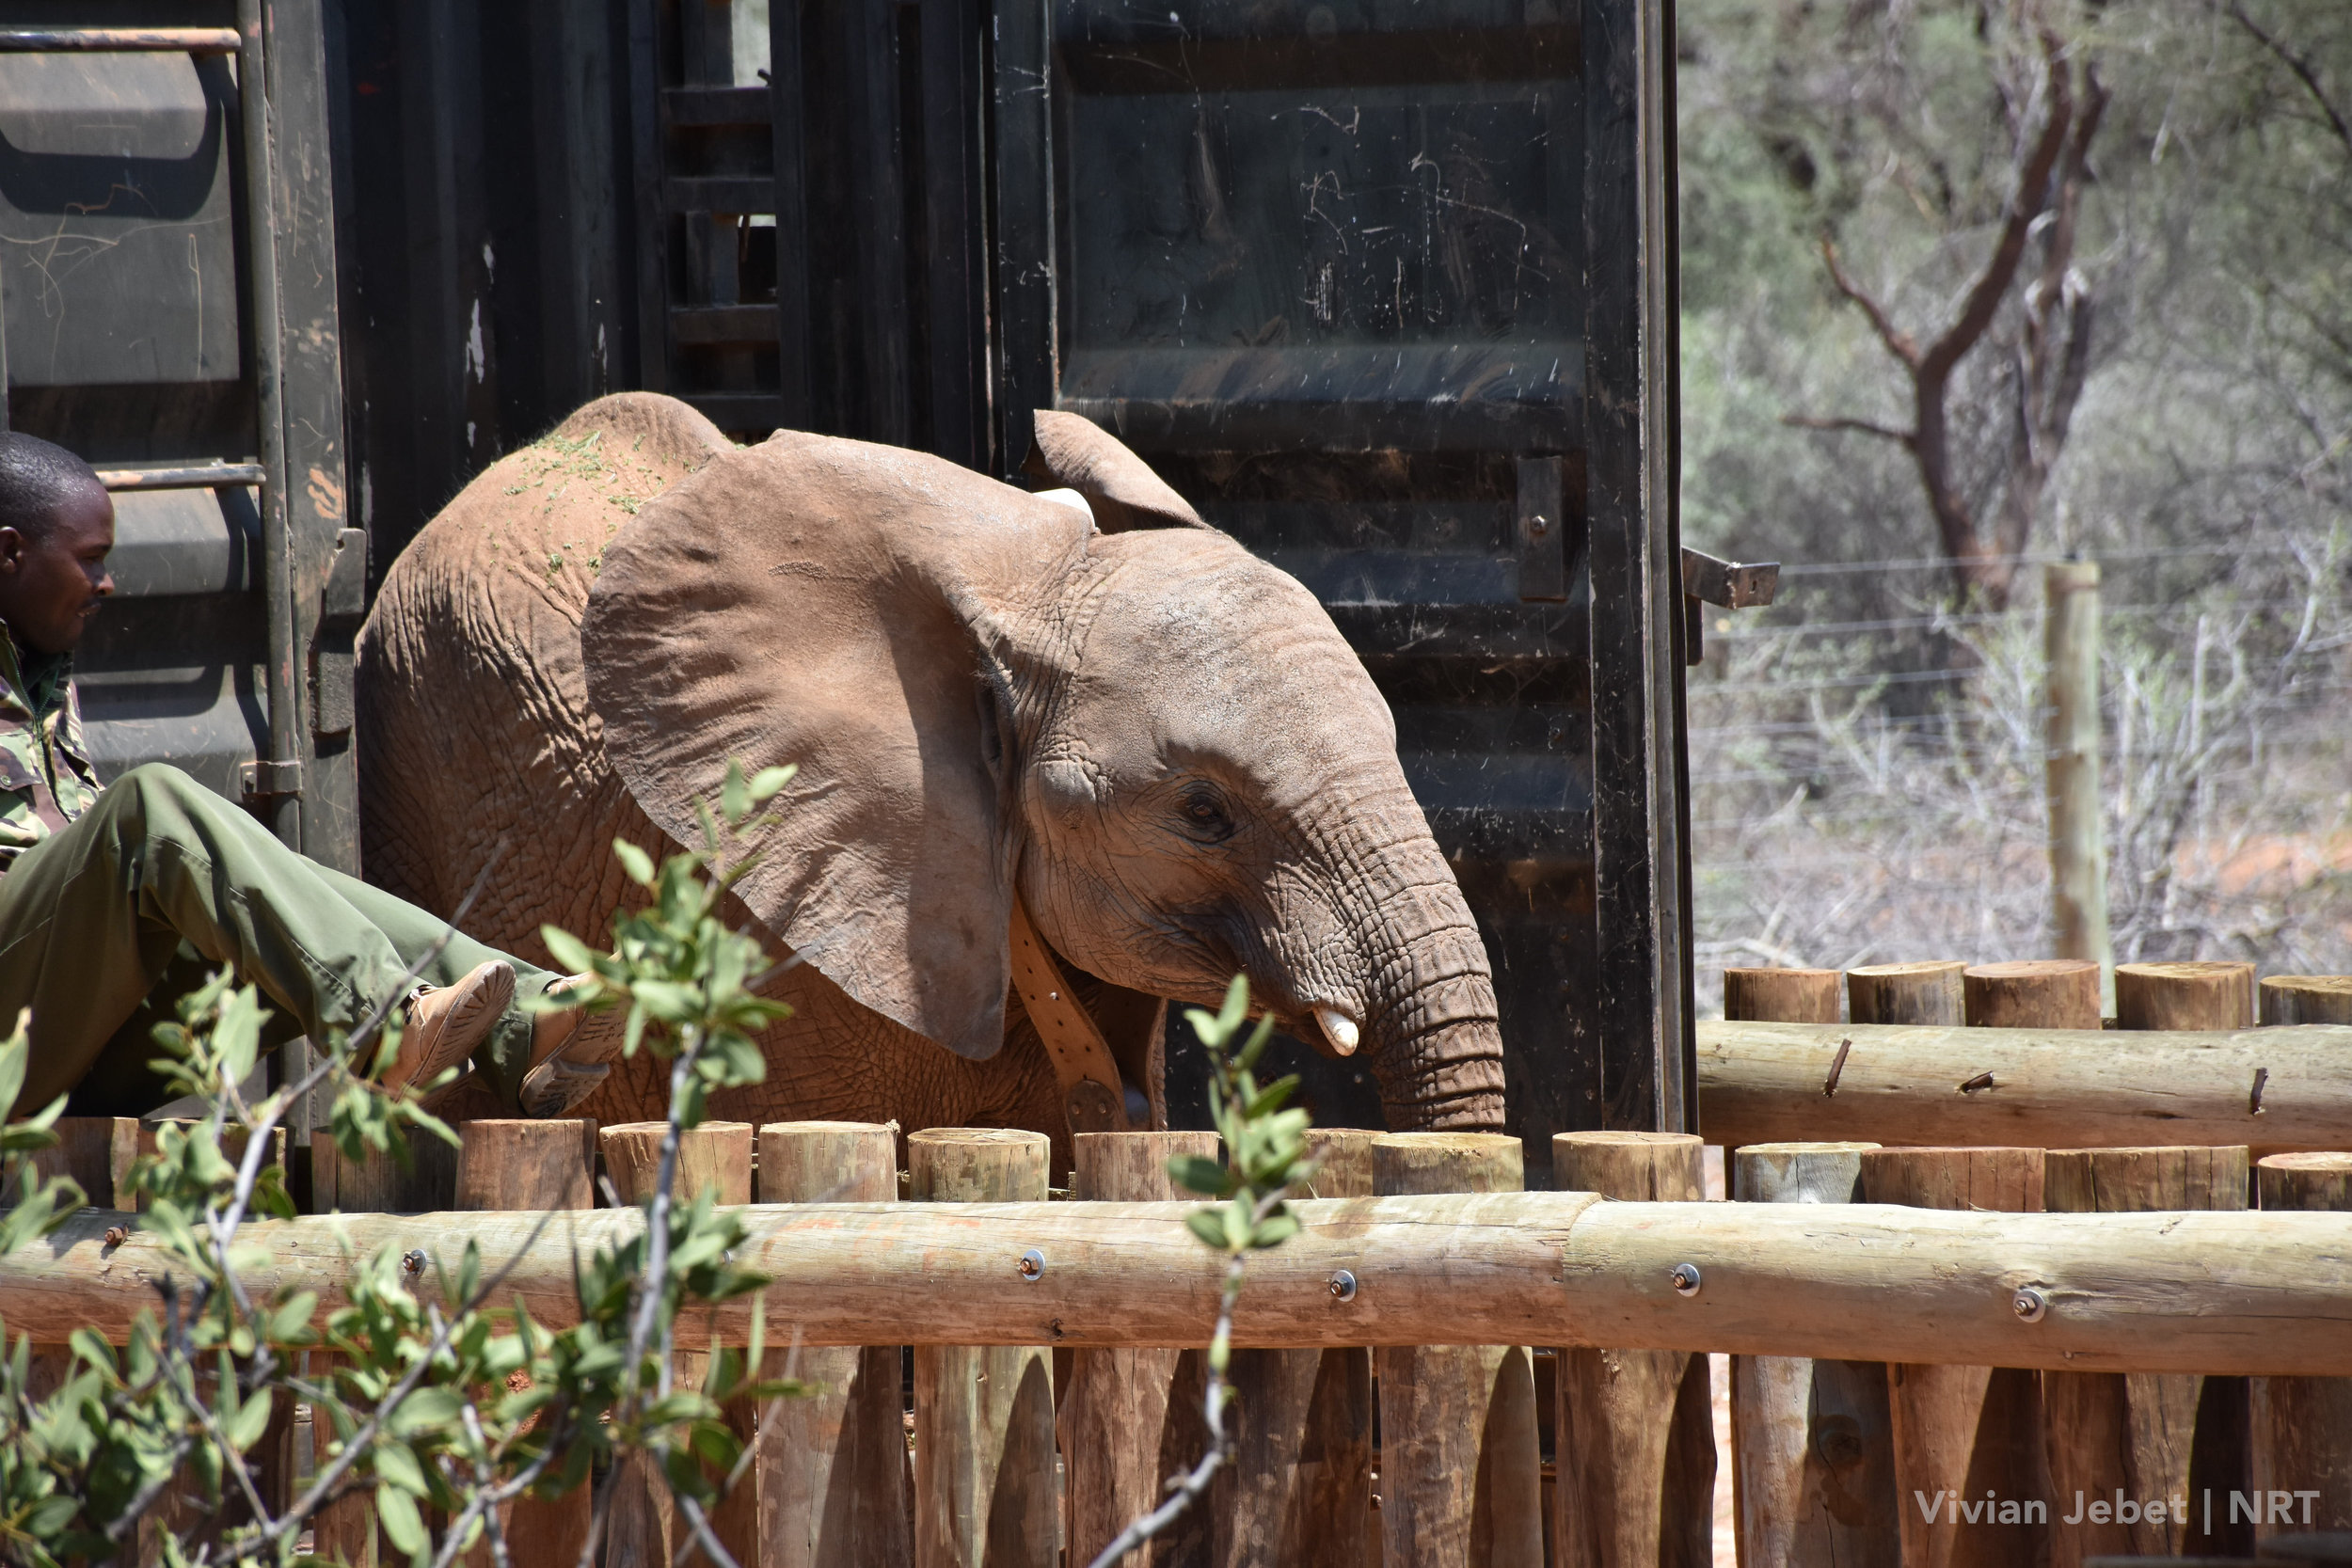 Warges leaves the transport crate and steps into his new home in Sera Community Conservancy